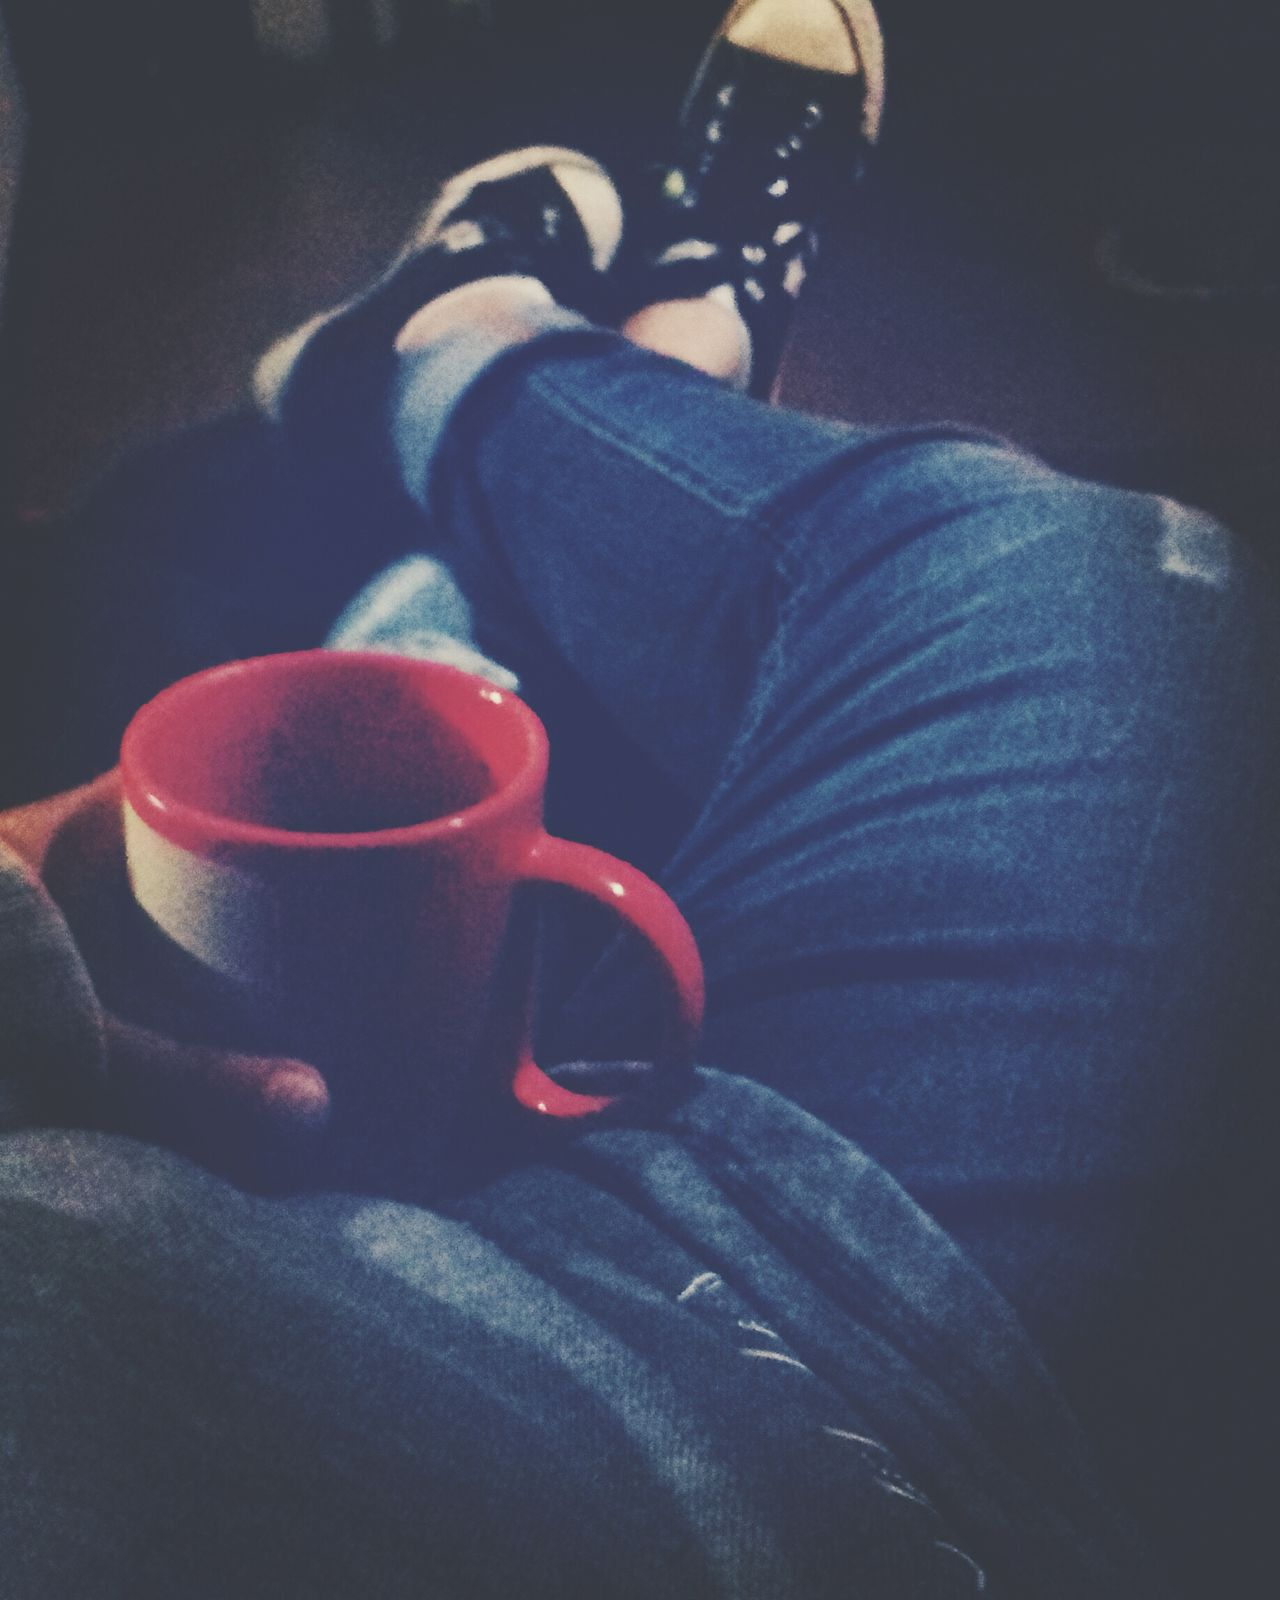 Queen Chilling At Home Chilling Netflix Hot Chocolate Cup Night Nightphotography Human Body Part Human Woman